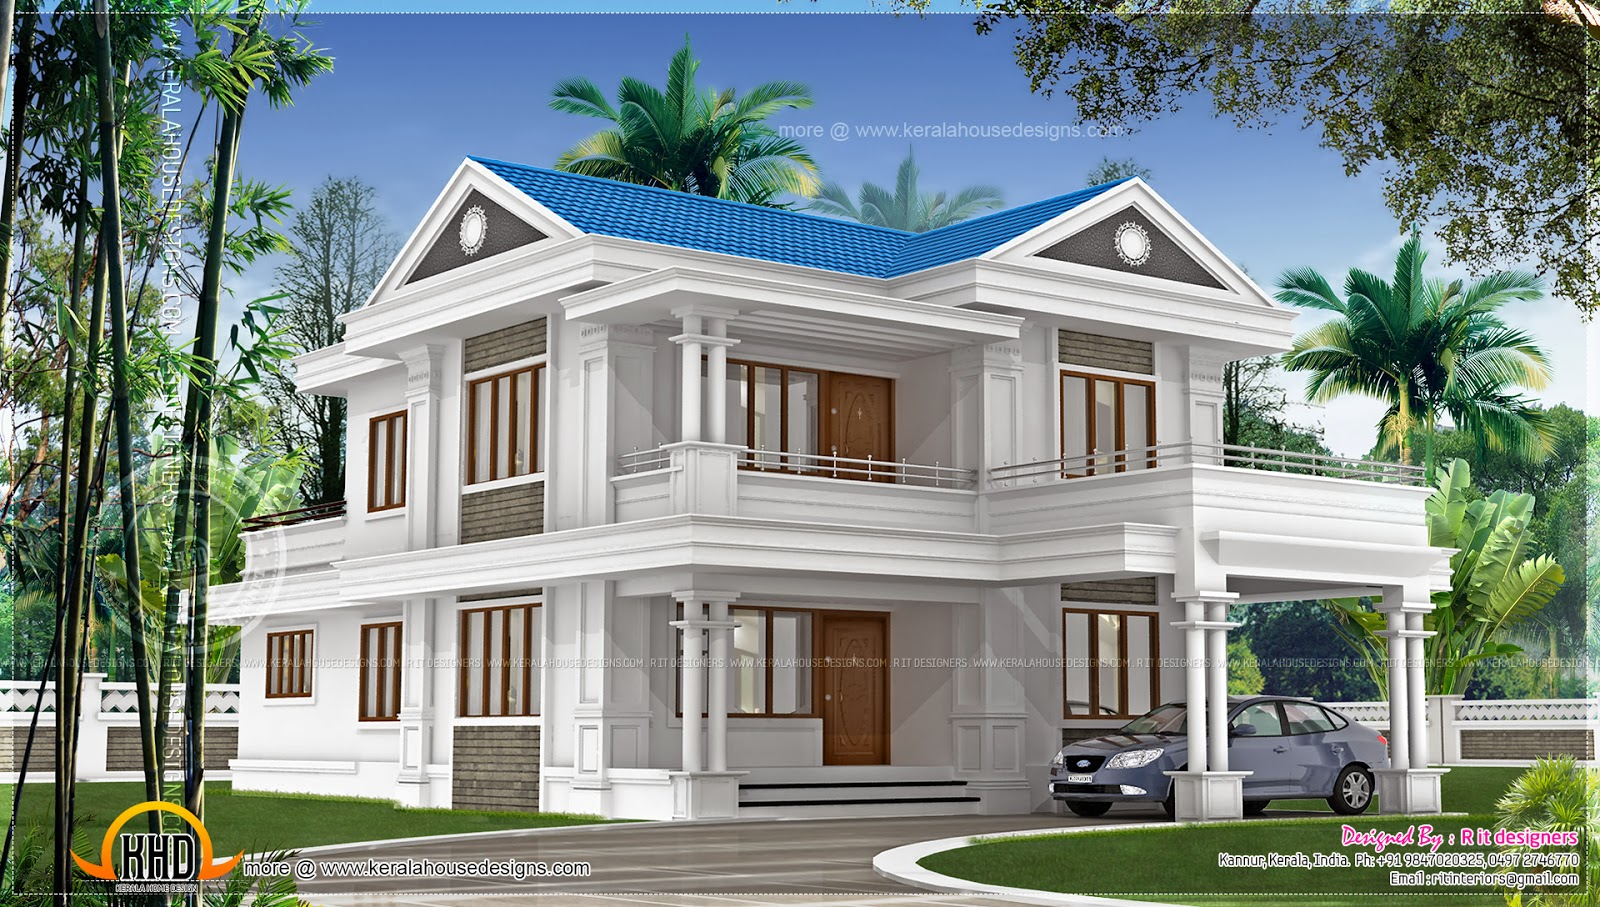 New 1170 Square Feet House Exterior Design Release, Reviews and Models ...